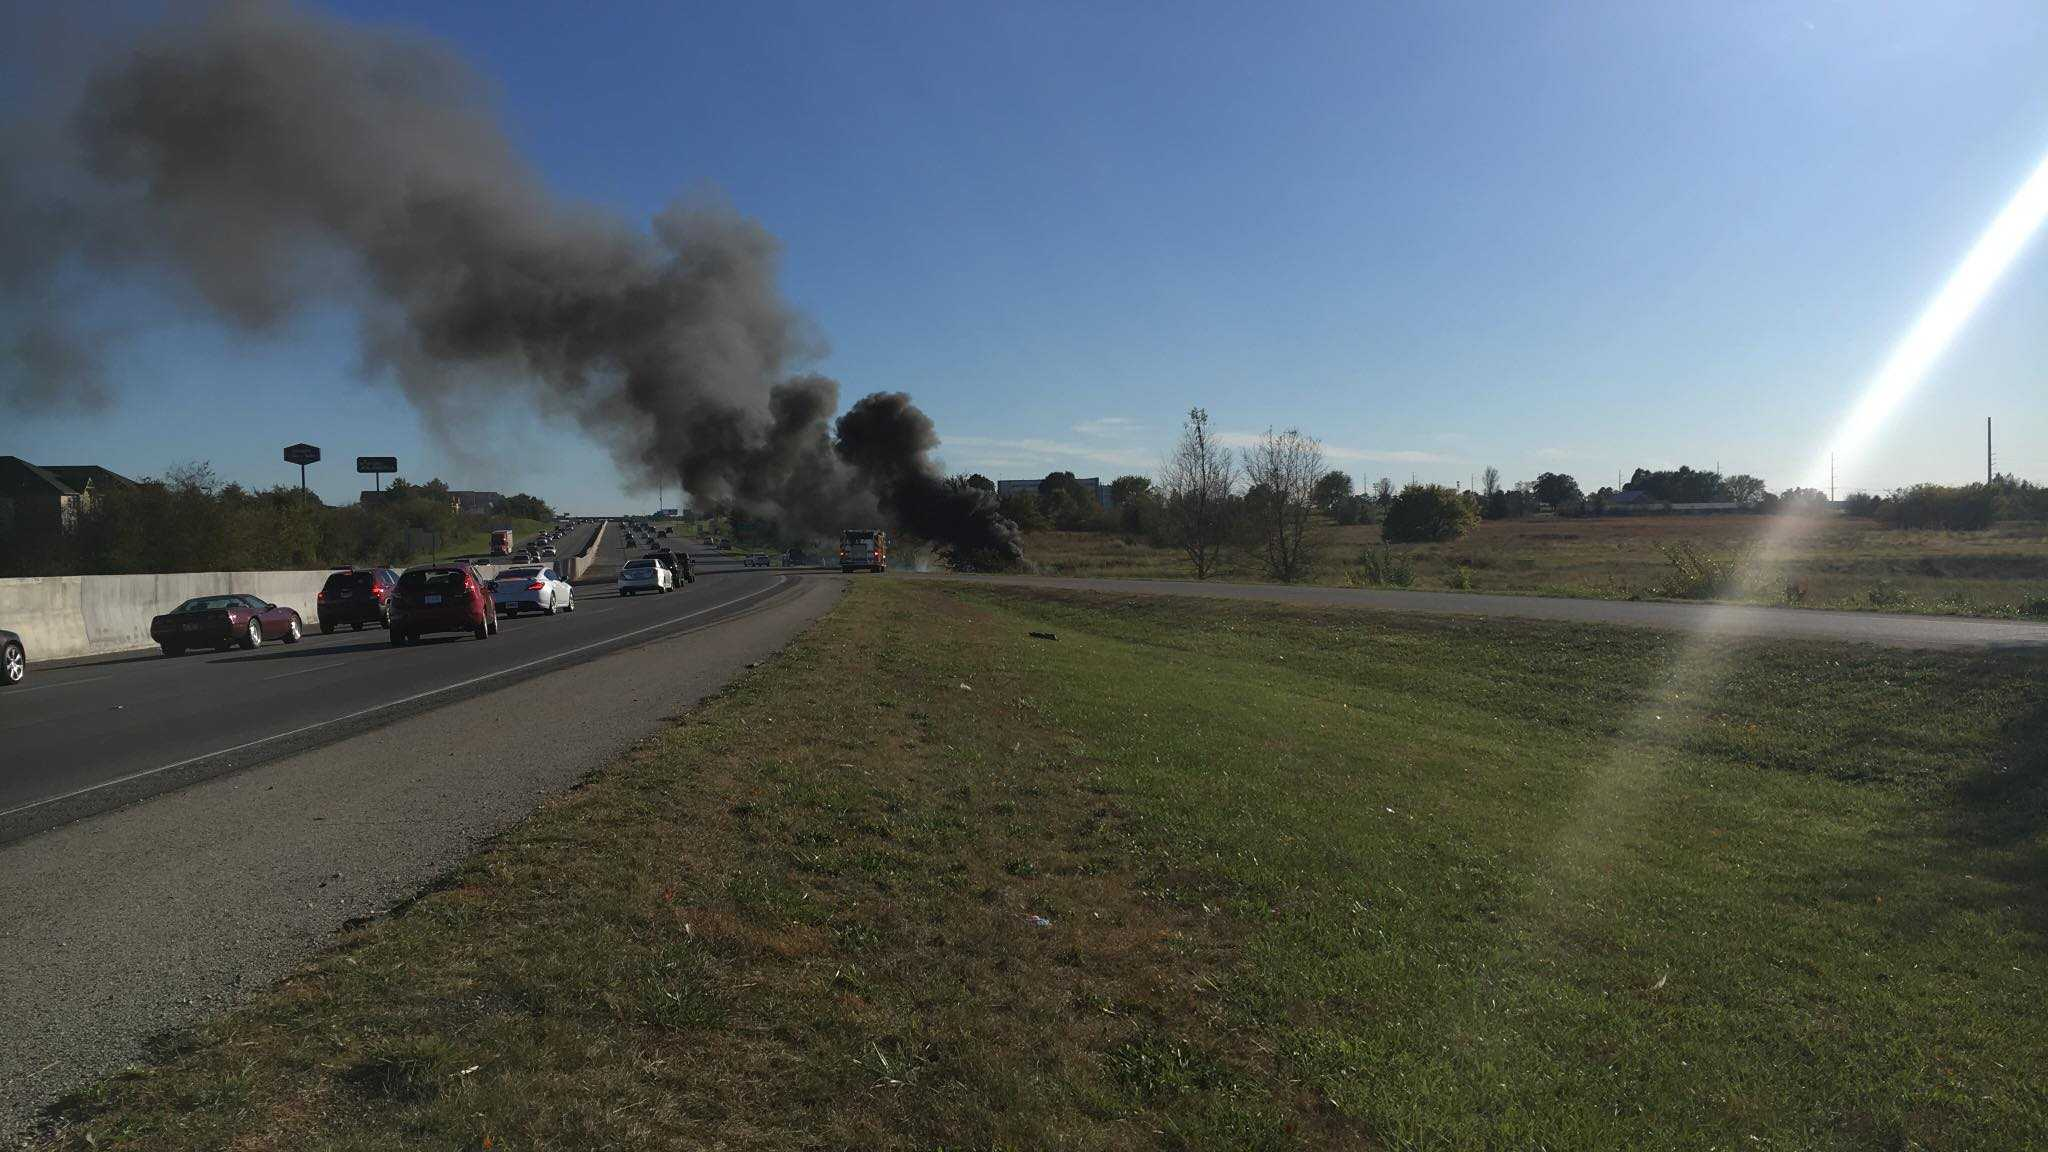 A pickup truck caught fire on I-49 SB near the Sunset Avenue exit in Springdale Monday afternoon.